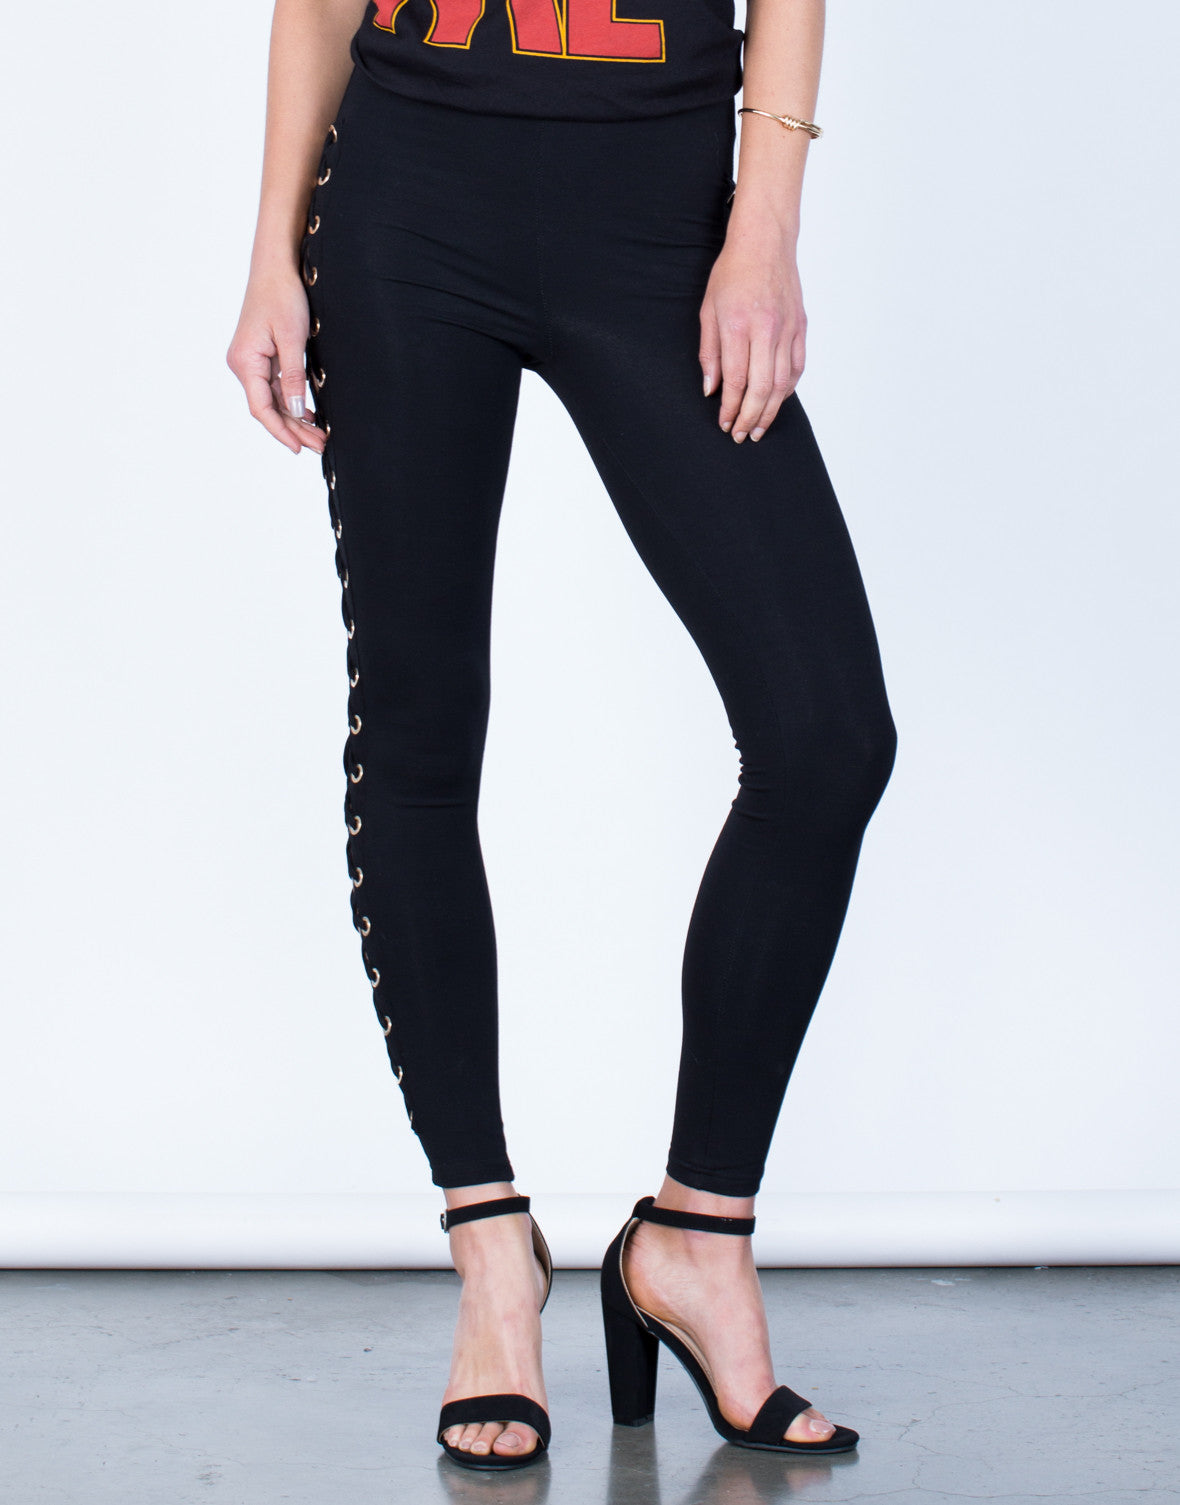 Front View of Stretchy Lace-Up Leggings